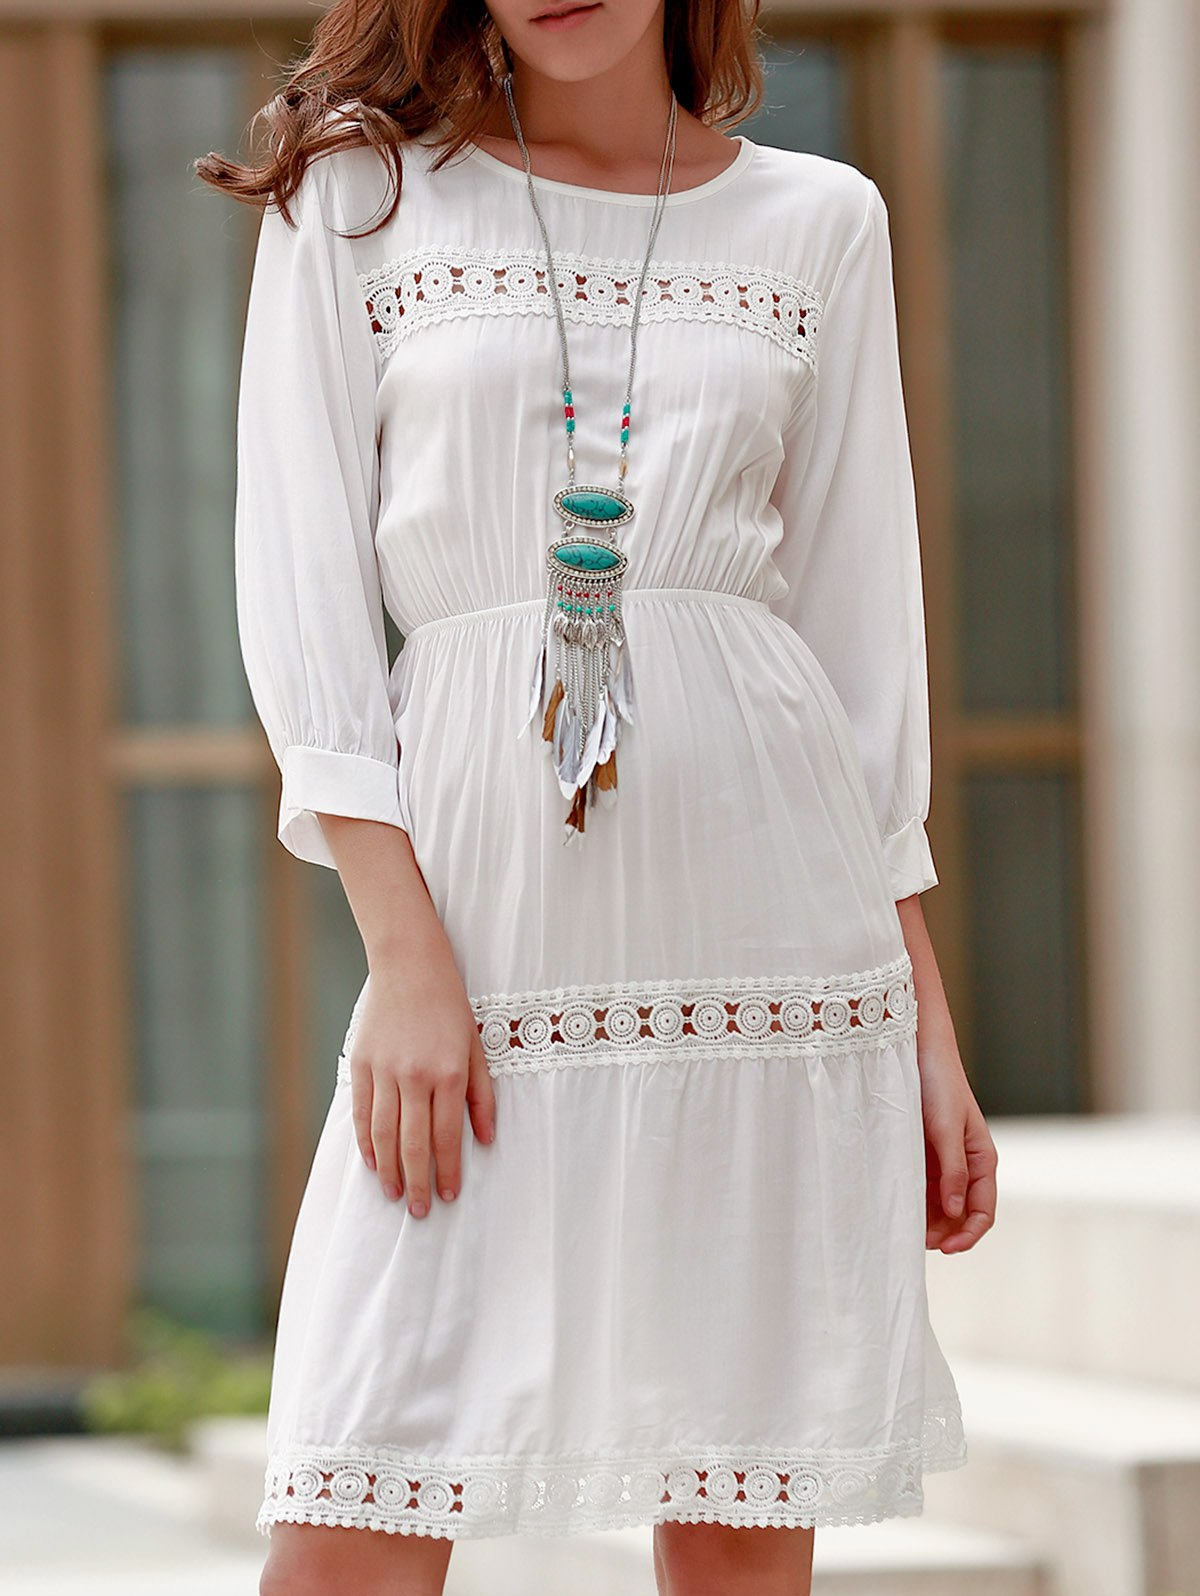 Ladylike Round Collar 3/4 Sleeve White Hollow Out Women's Dress - WHITE ONE SIZE(FIT SIZE XS TO M)